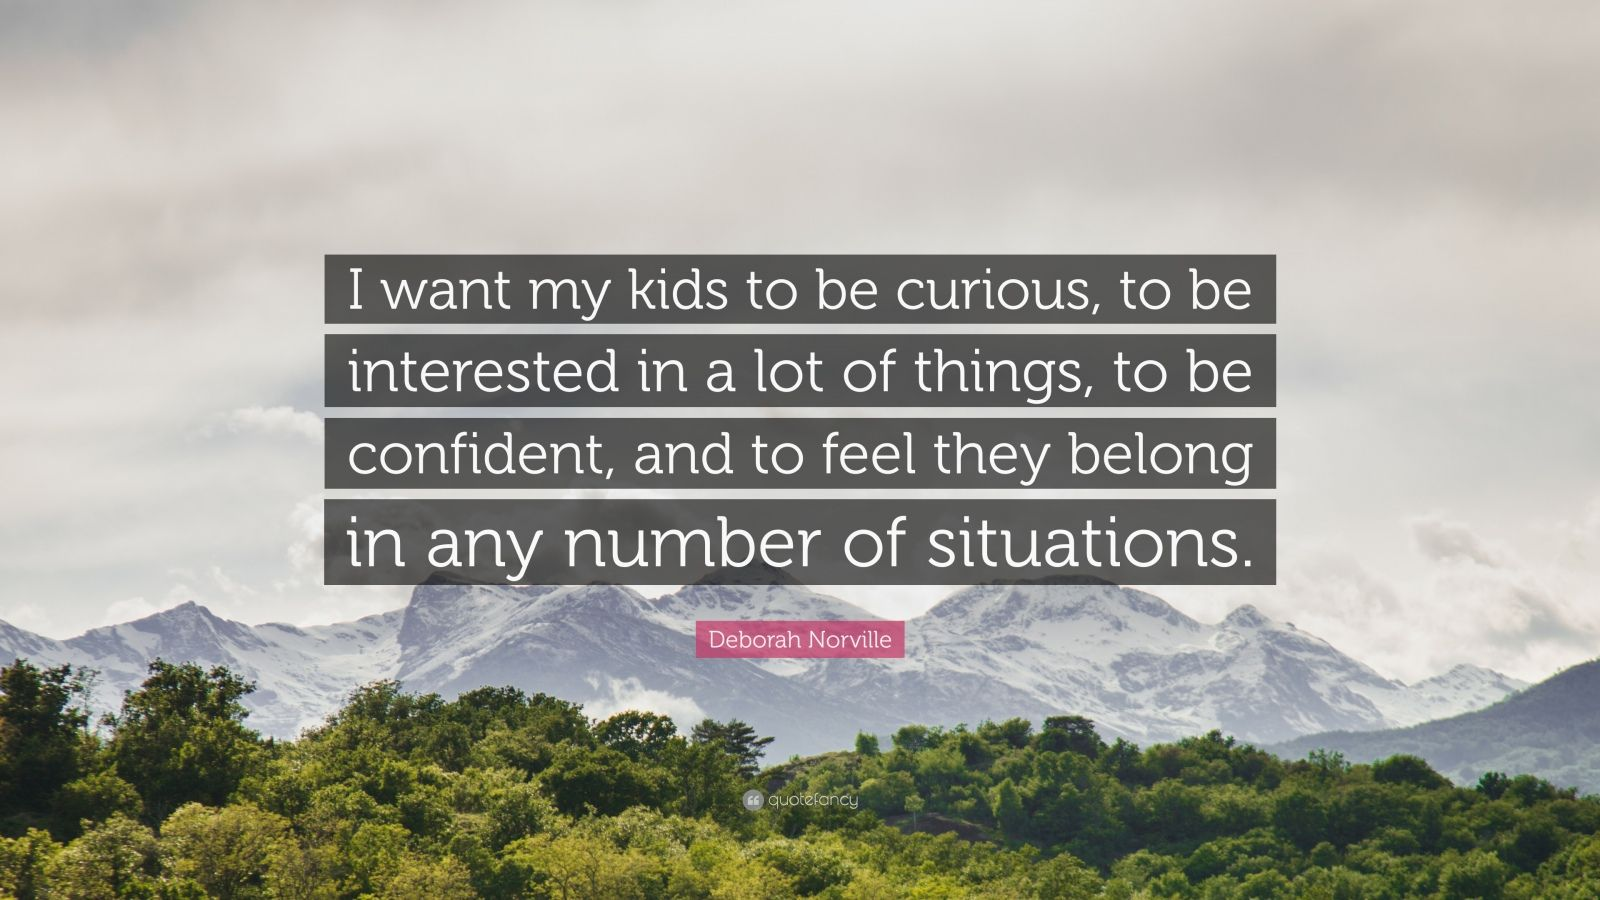 """Deborah Norville Quote: """"I want my kids to be curious, to be interested in a lot of things, to be confident, and to feel they belong in any number of situations."""""""